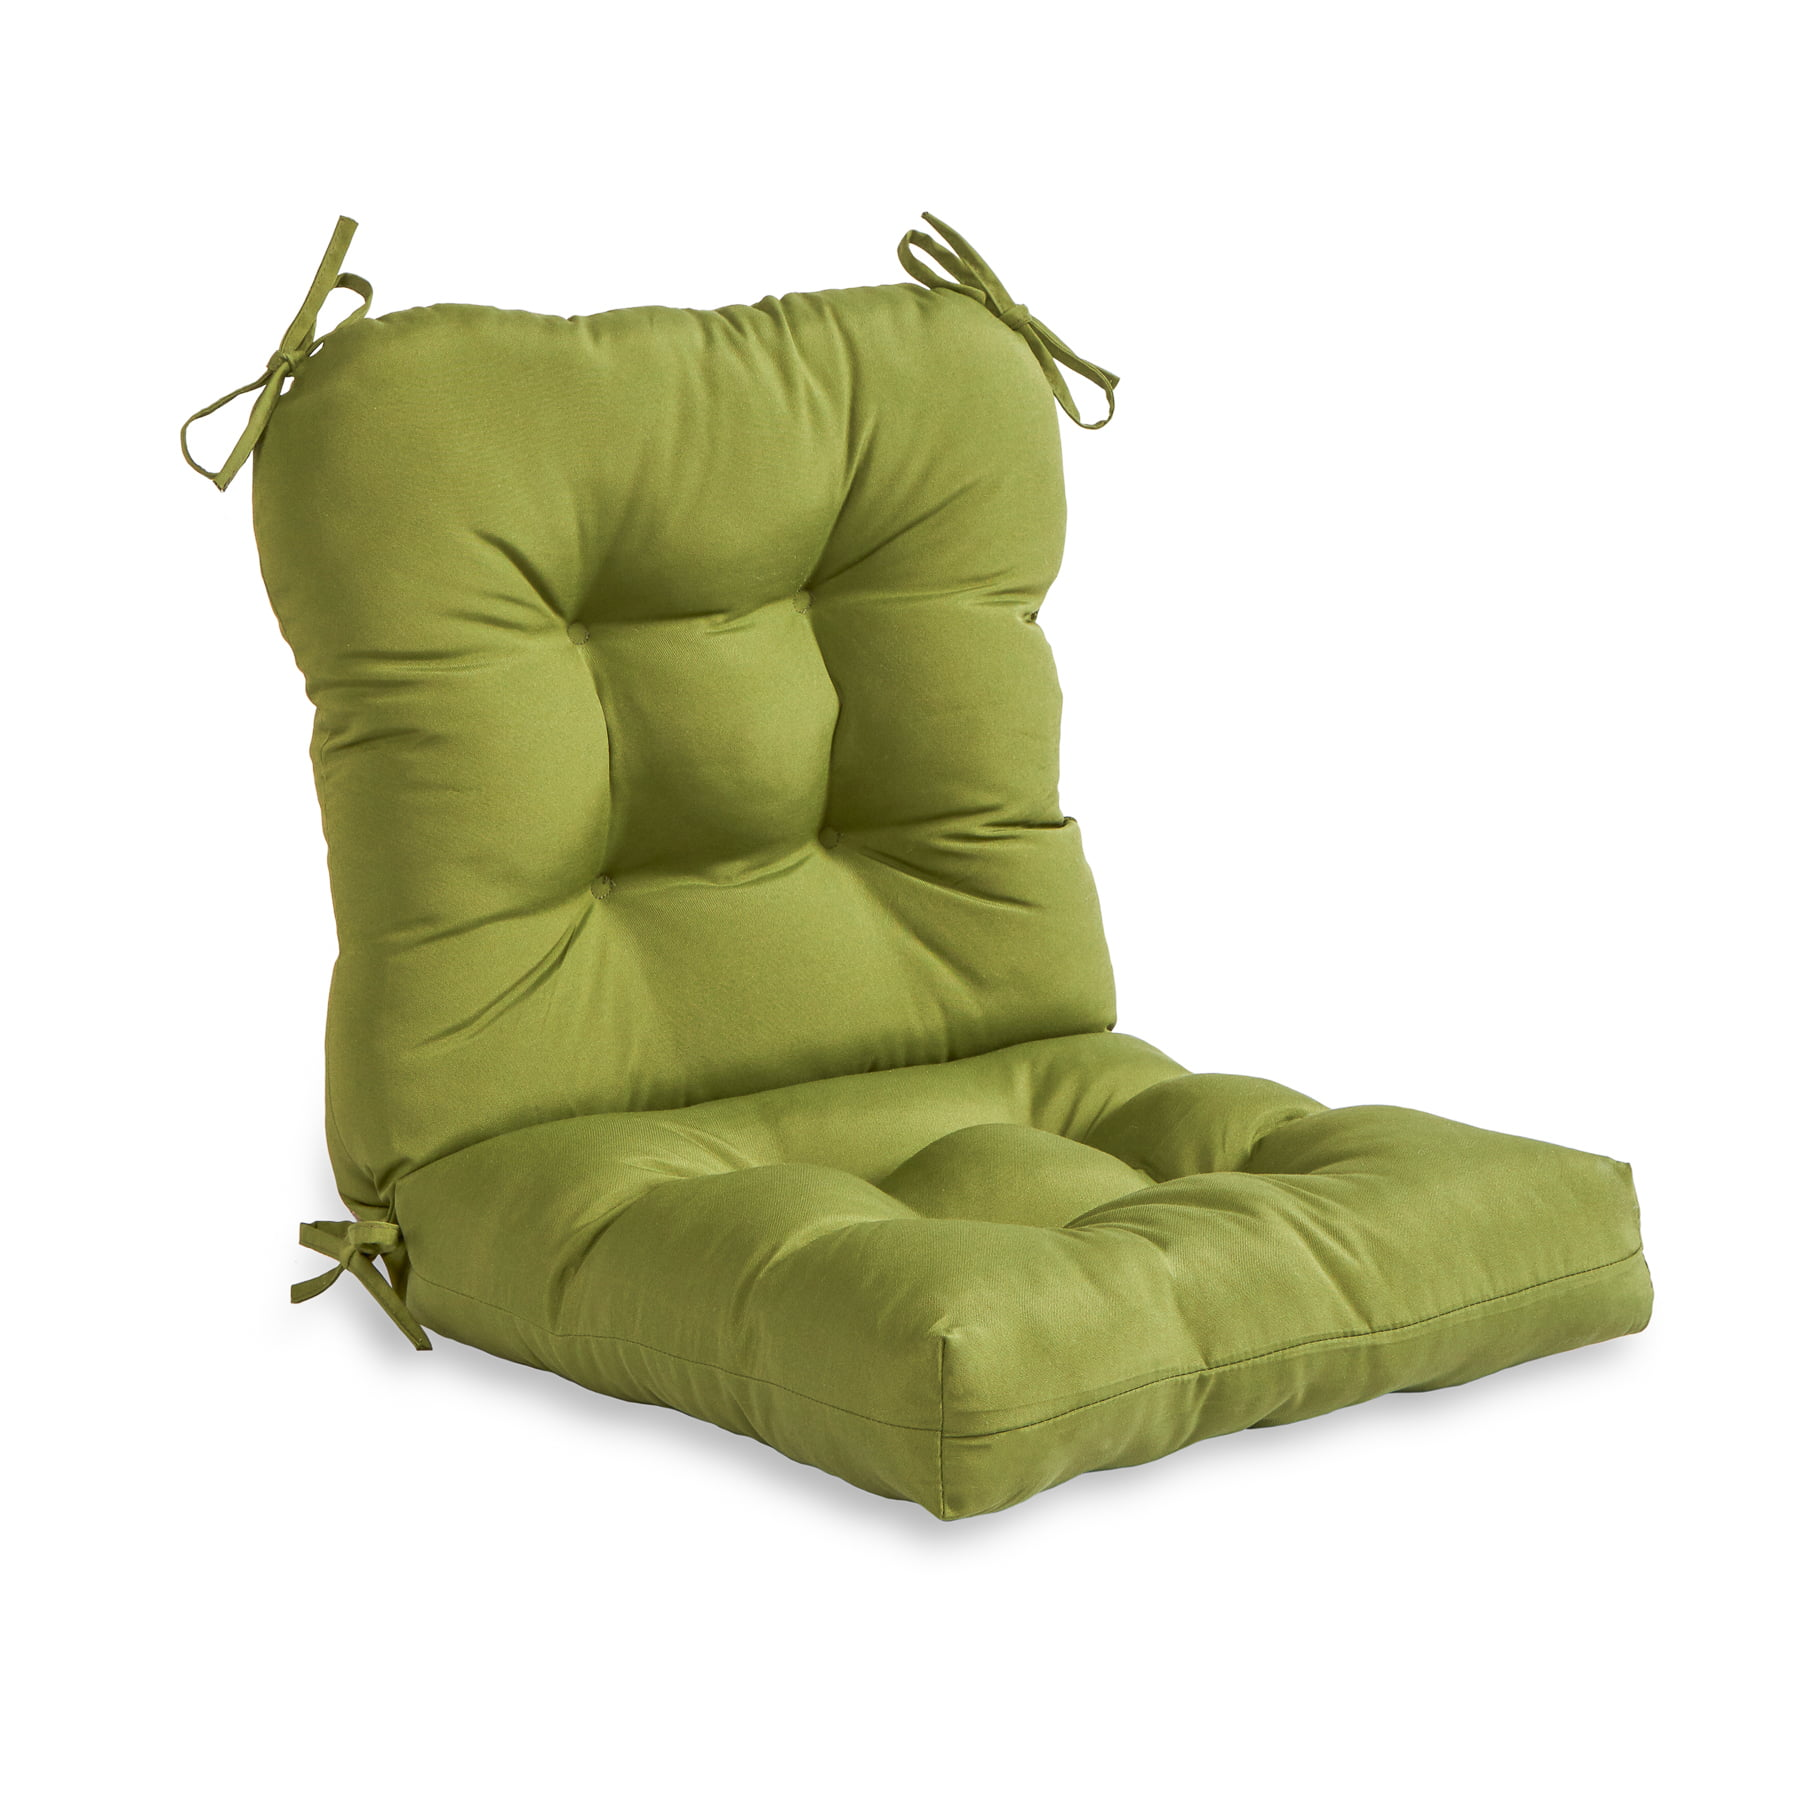 Greendale Home Fashions Summerside Outdoor Seat Back Combo Cushion by Greendale Home Fashions